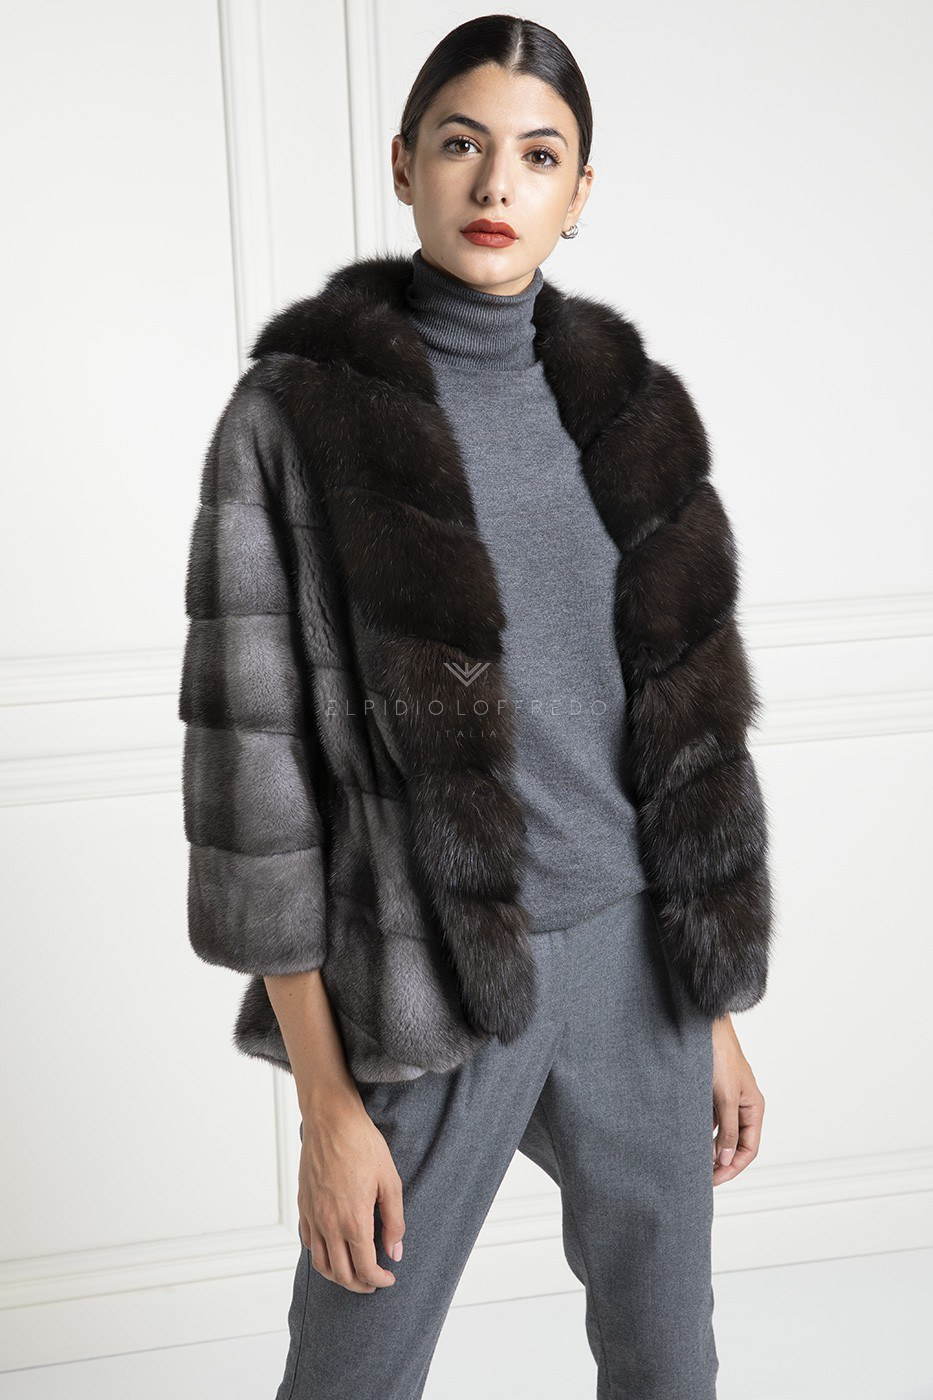 Blue Iris Mink with Barguzinsky Russian Sable and Shawl collar